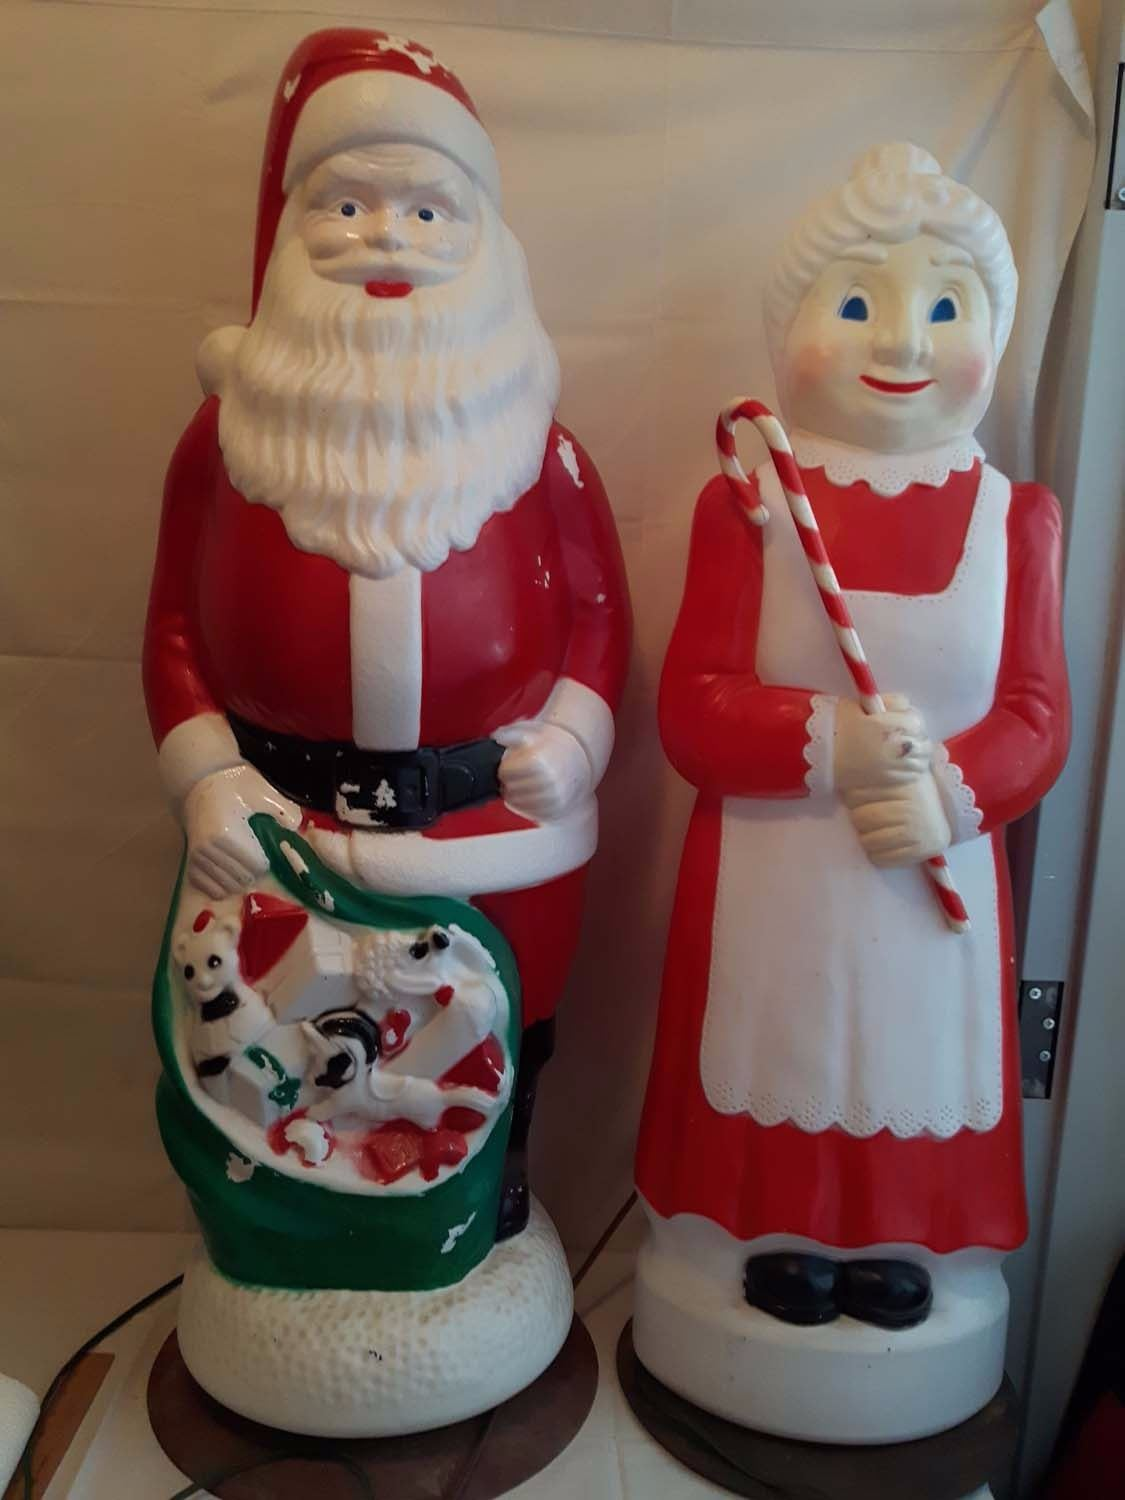 & Claus Outdoor Decorations Hard Plastic Working